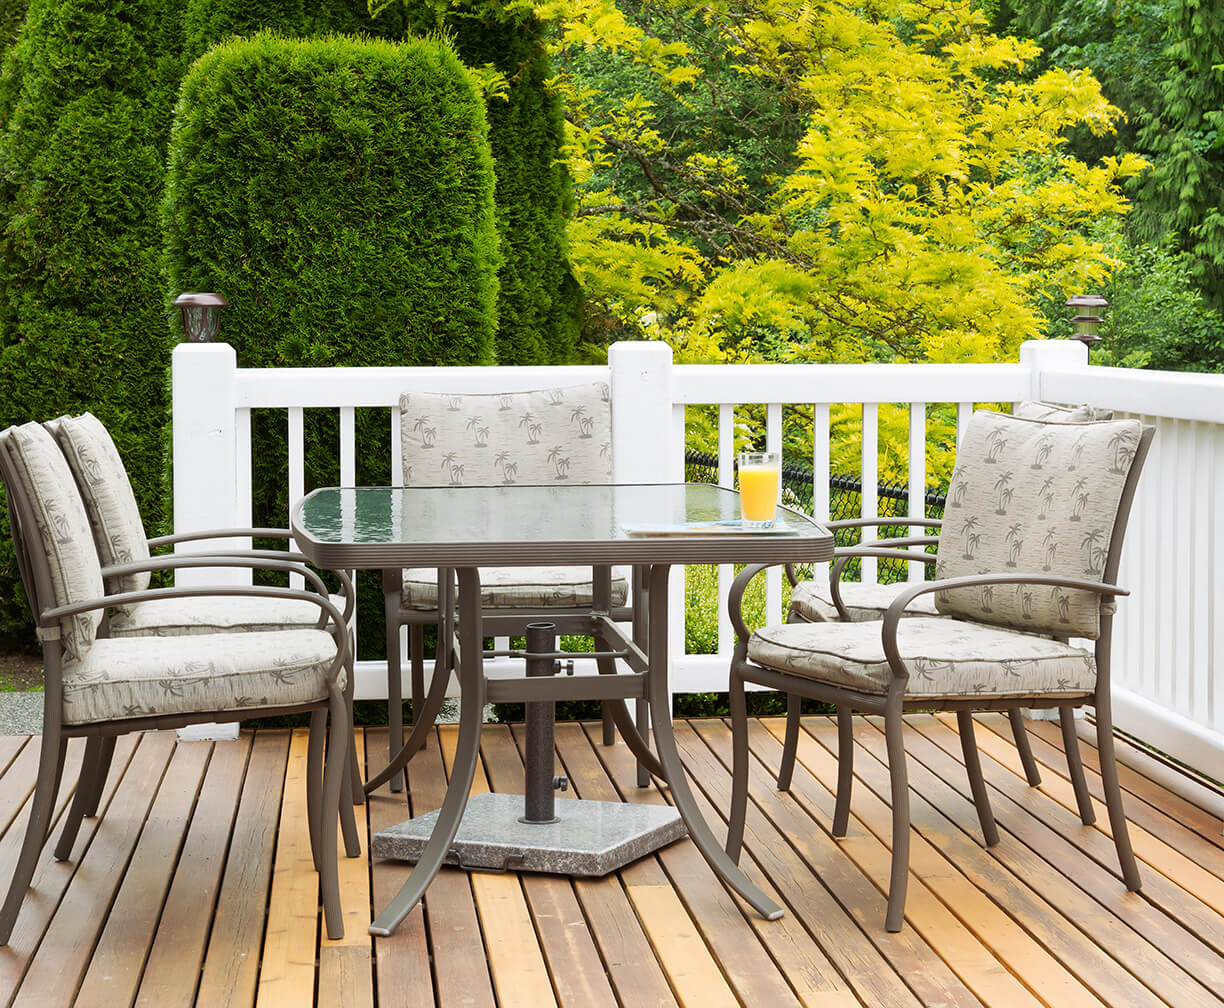 A wood deck with white railing.